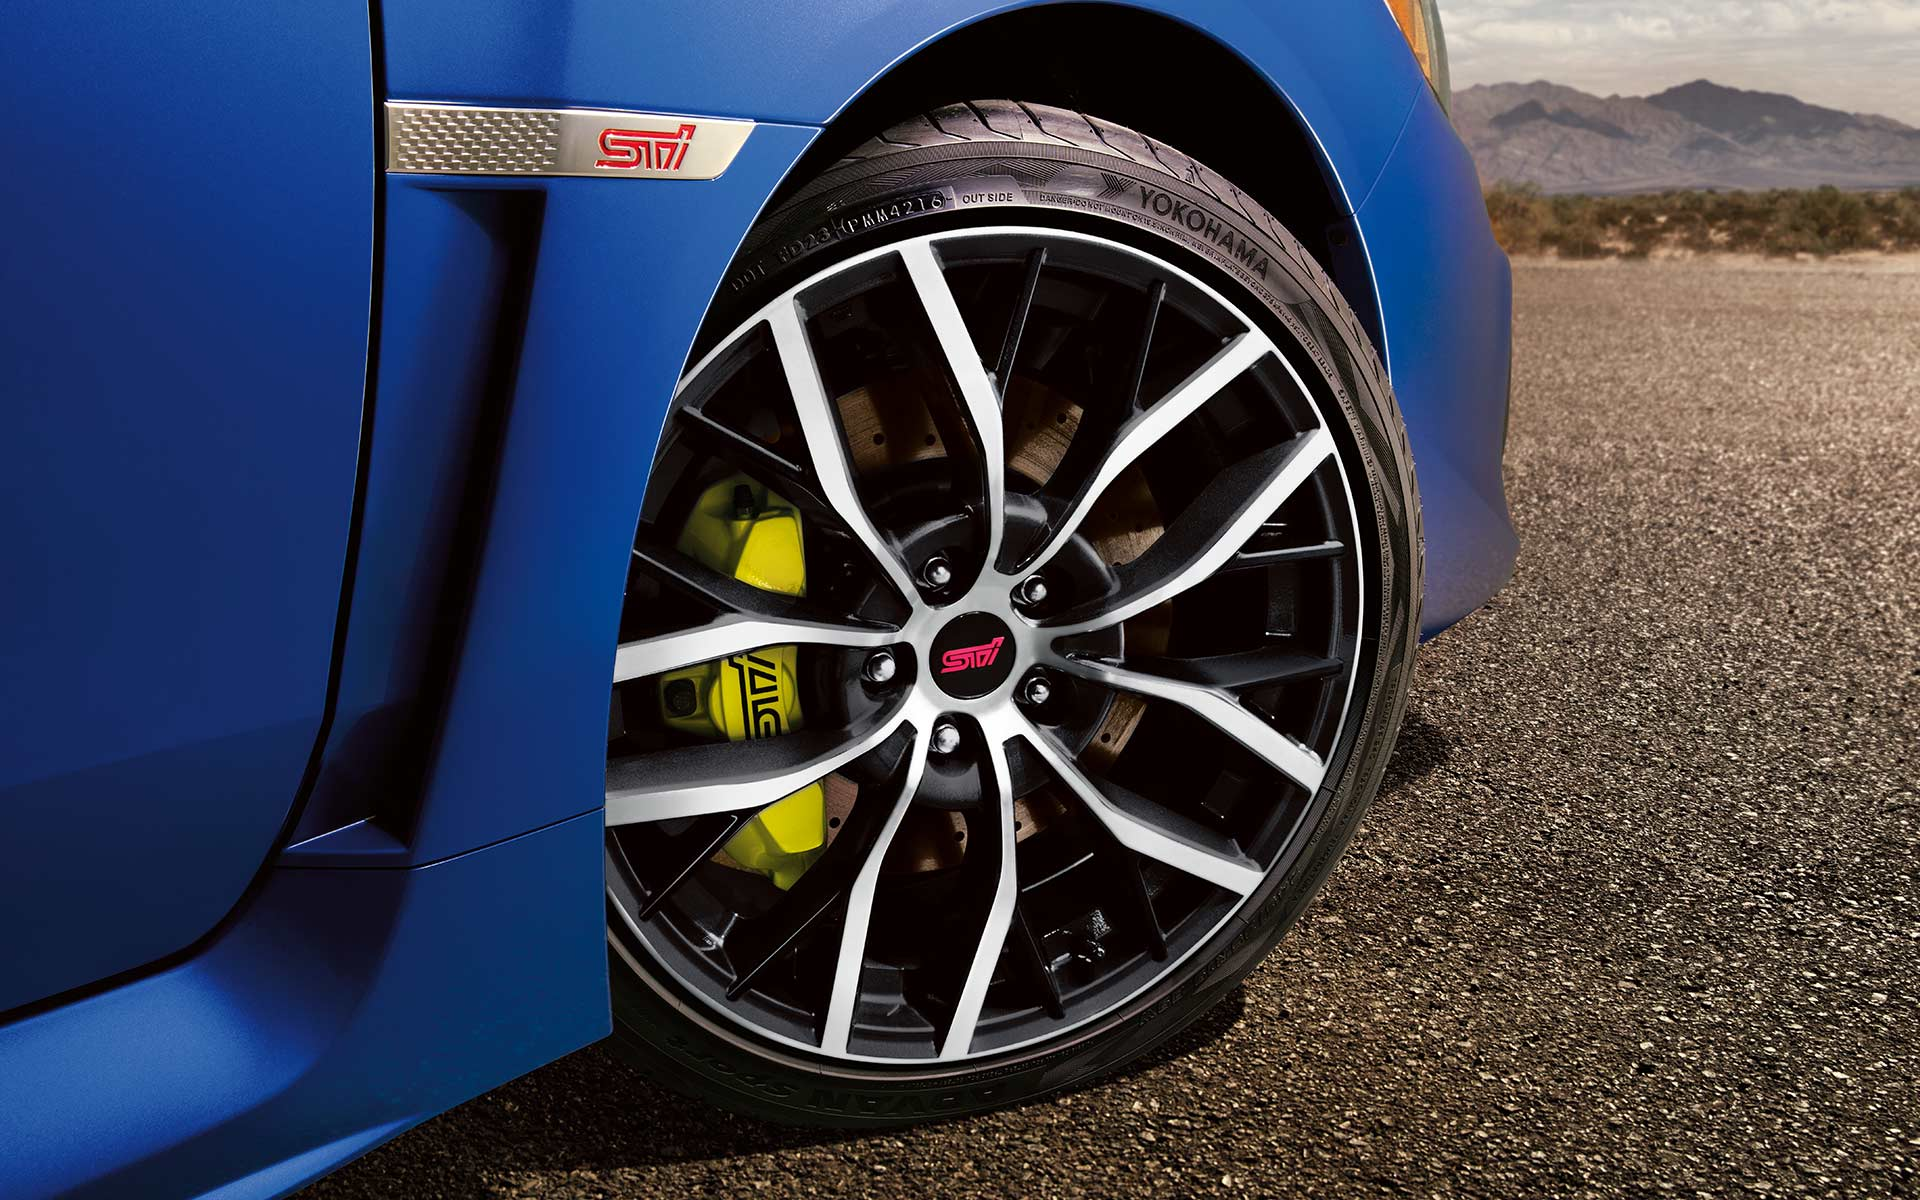 Close up view of WRX STI wheel